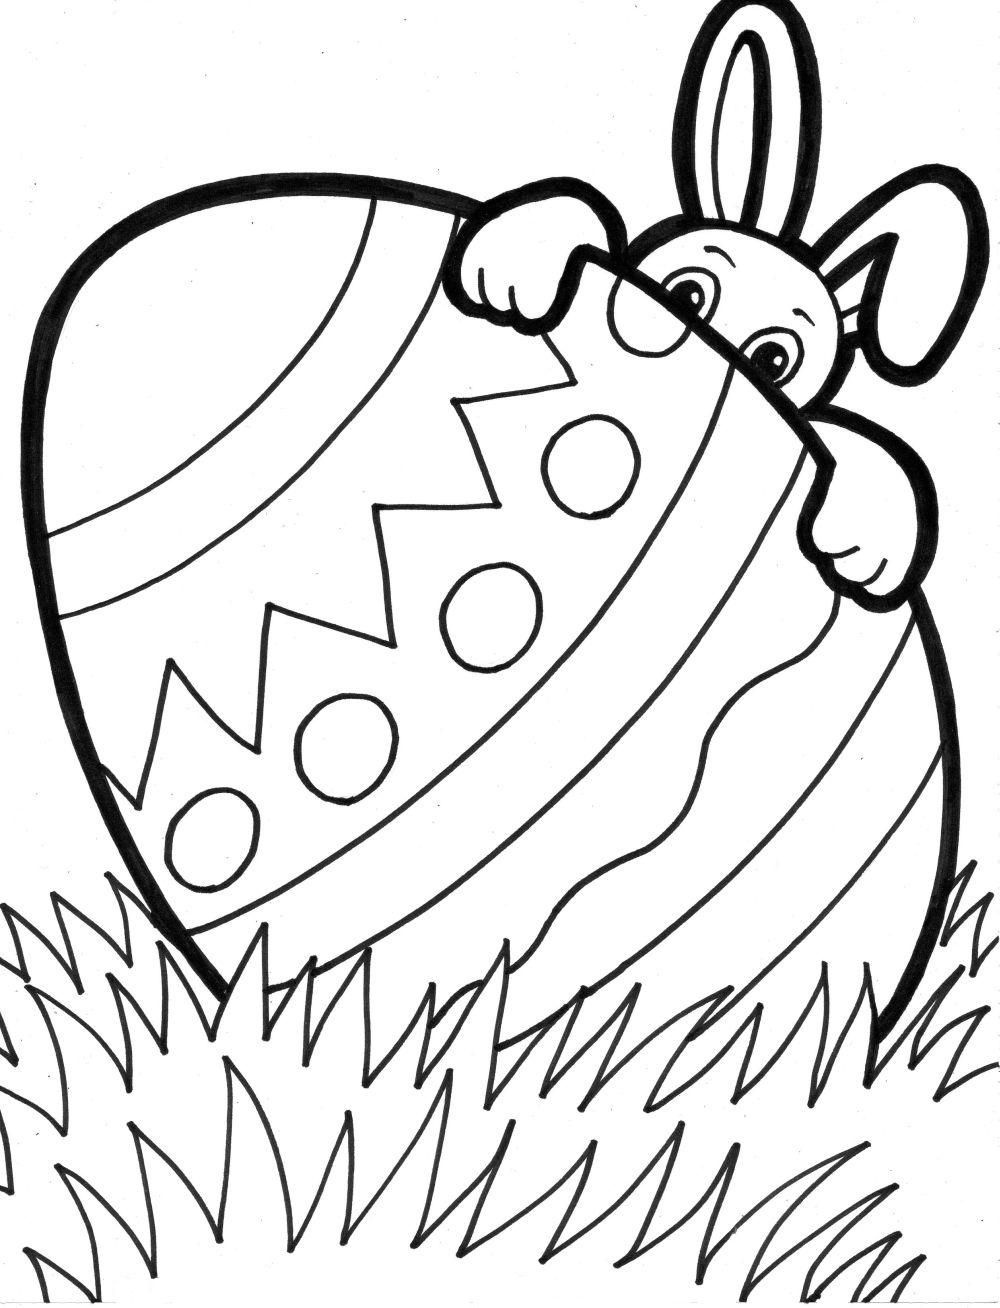 Free Easter Printable Coloring Pages For Kids Games And Wallpaper - Free Easter Color Pages Printable